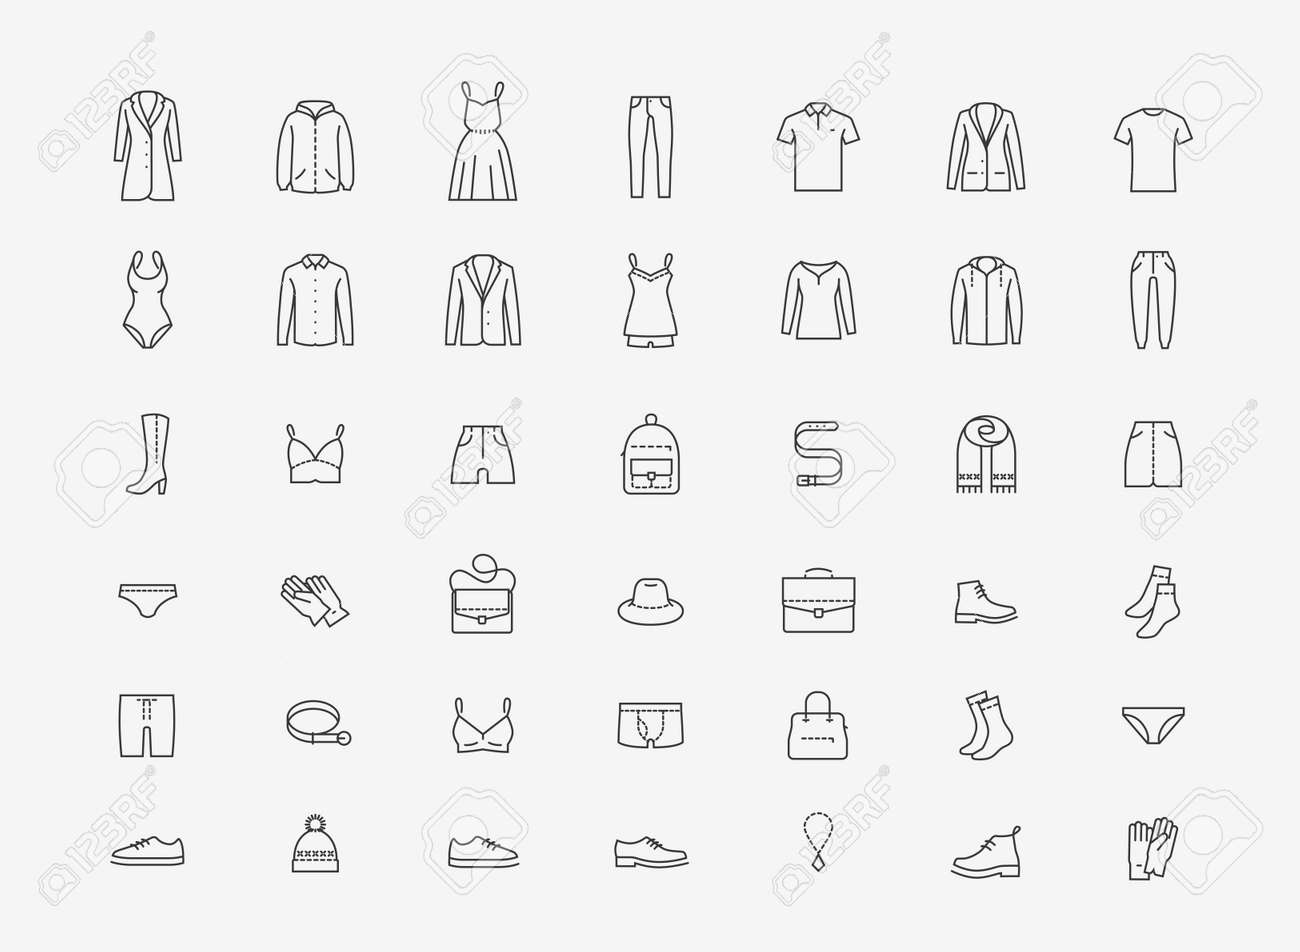 Clothing icon set in linear style on white - 135628944